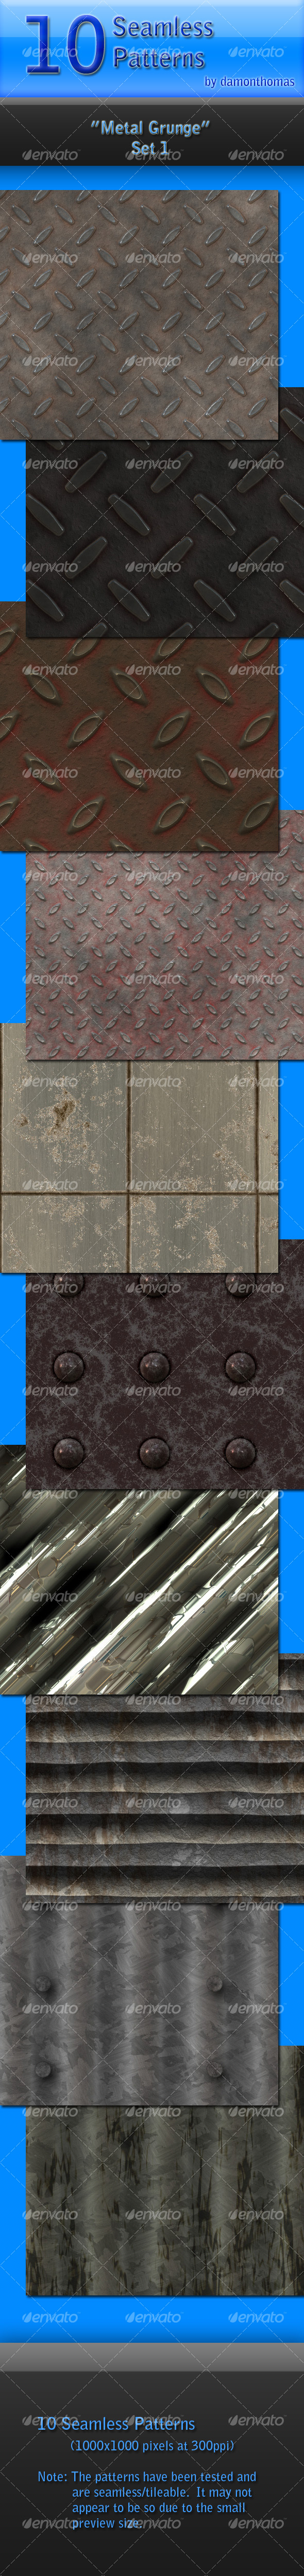 GraphicRiver 10 Metal Grunge Seamless Patterns 82762